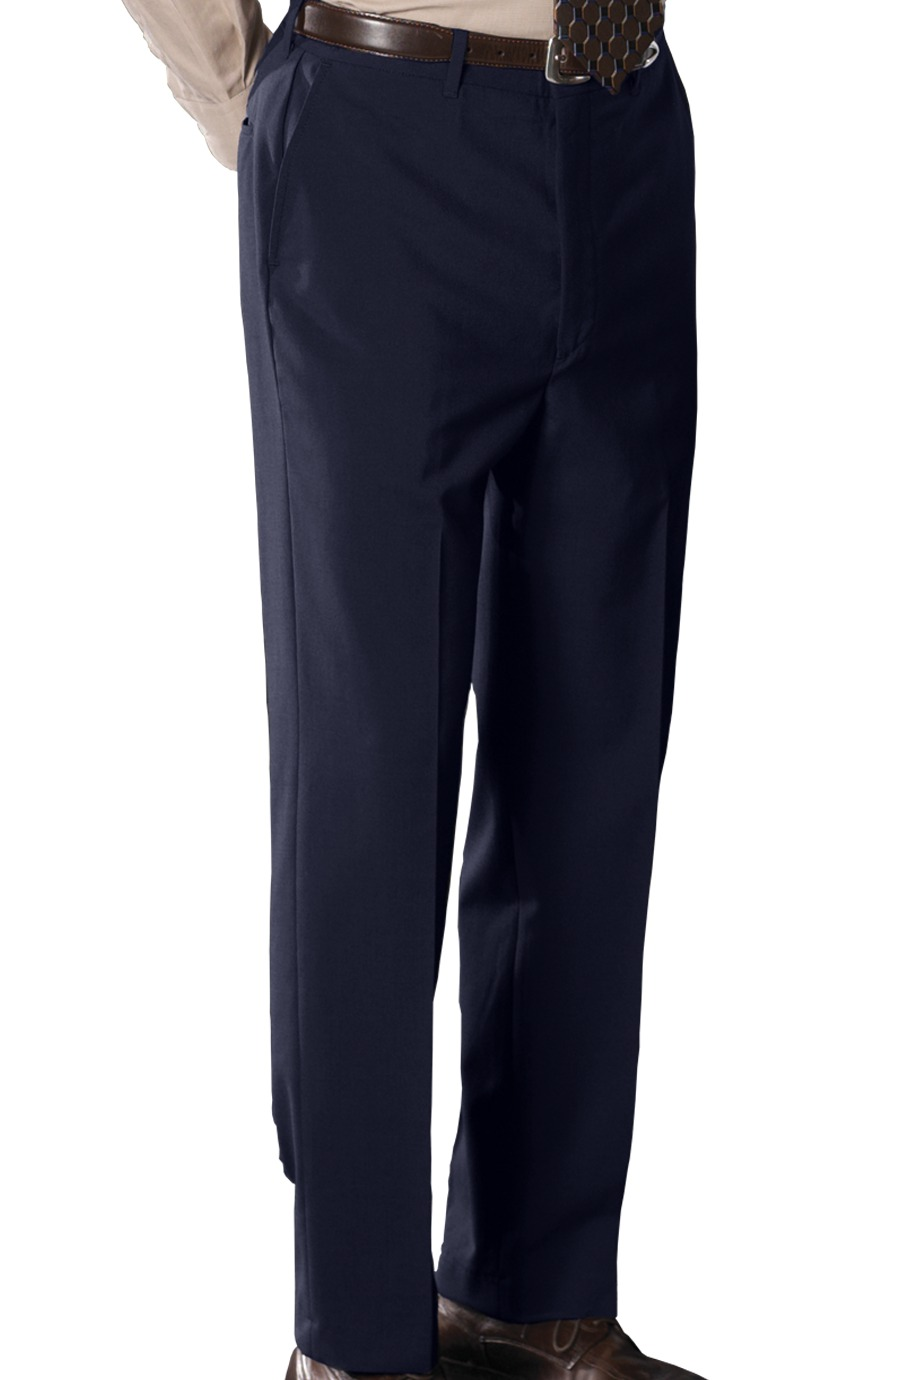 Edwards Garment 2780 - Men's Wool Blend Flat Front Pant